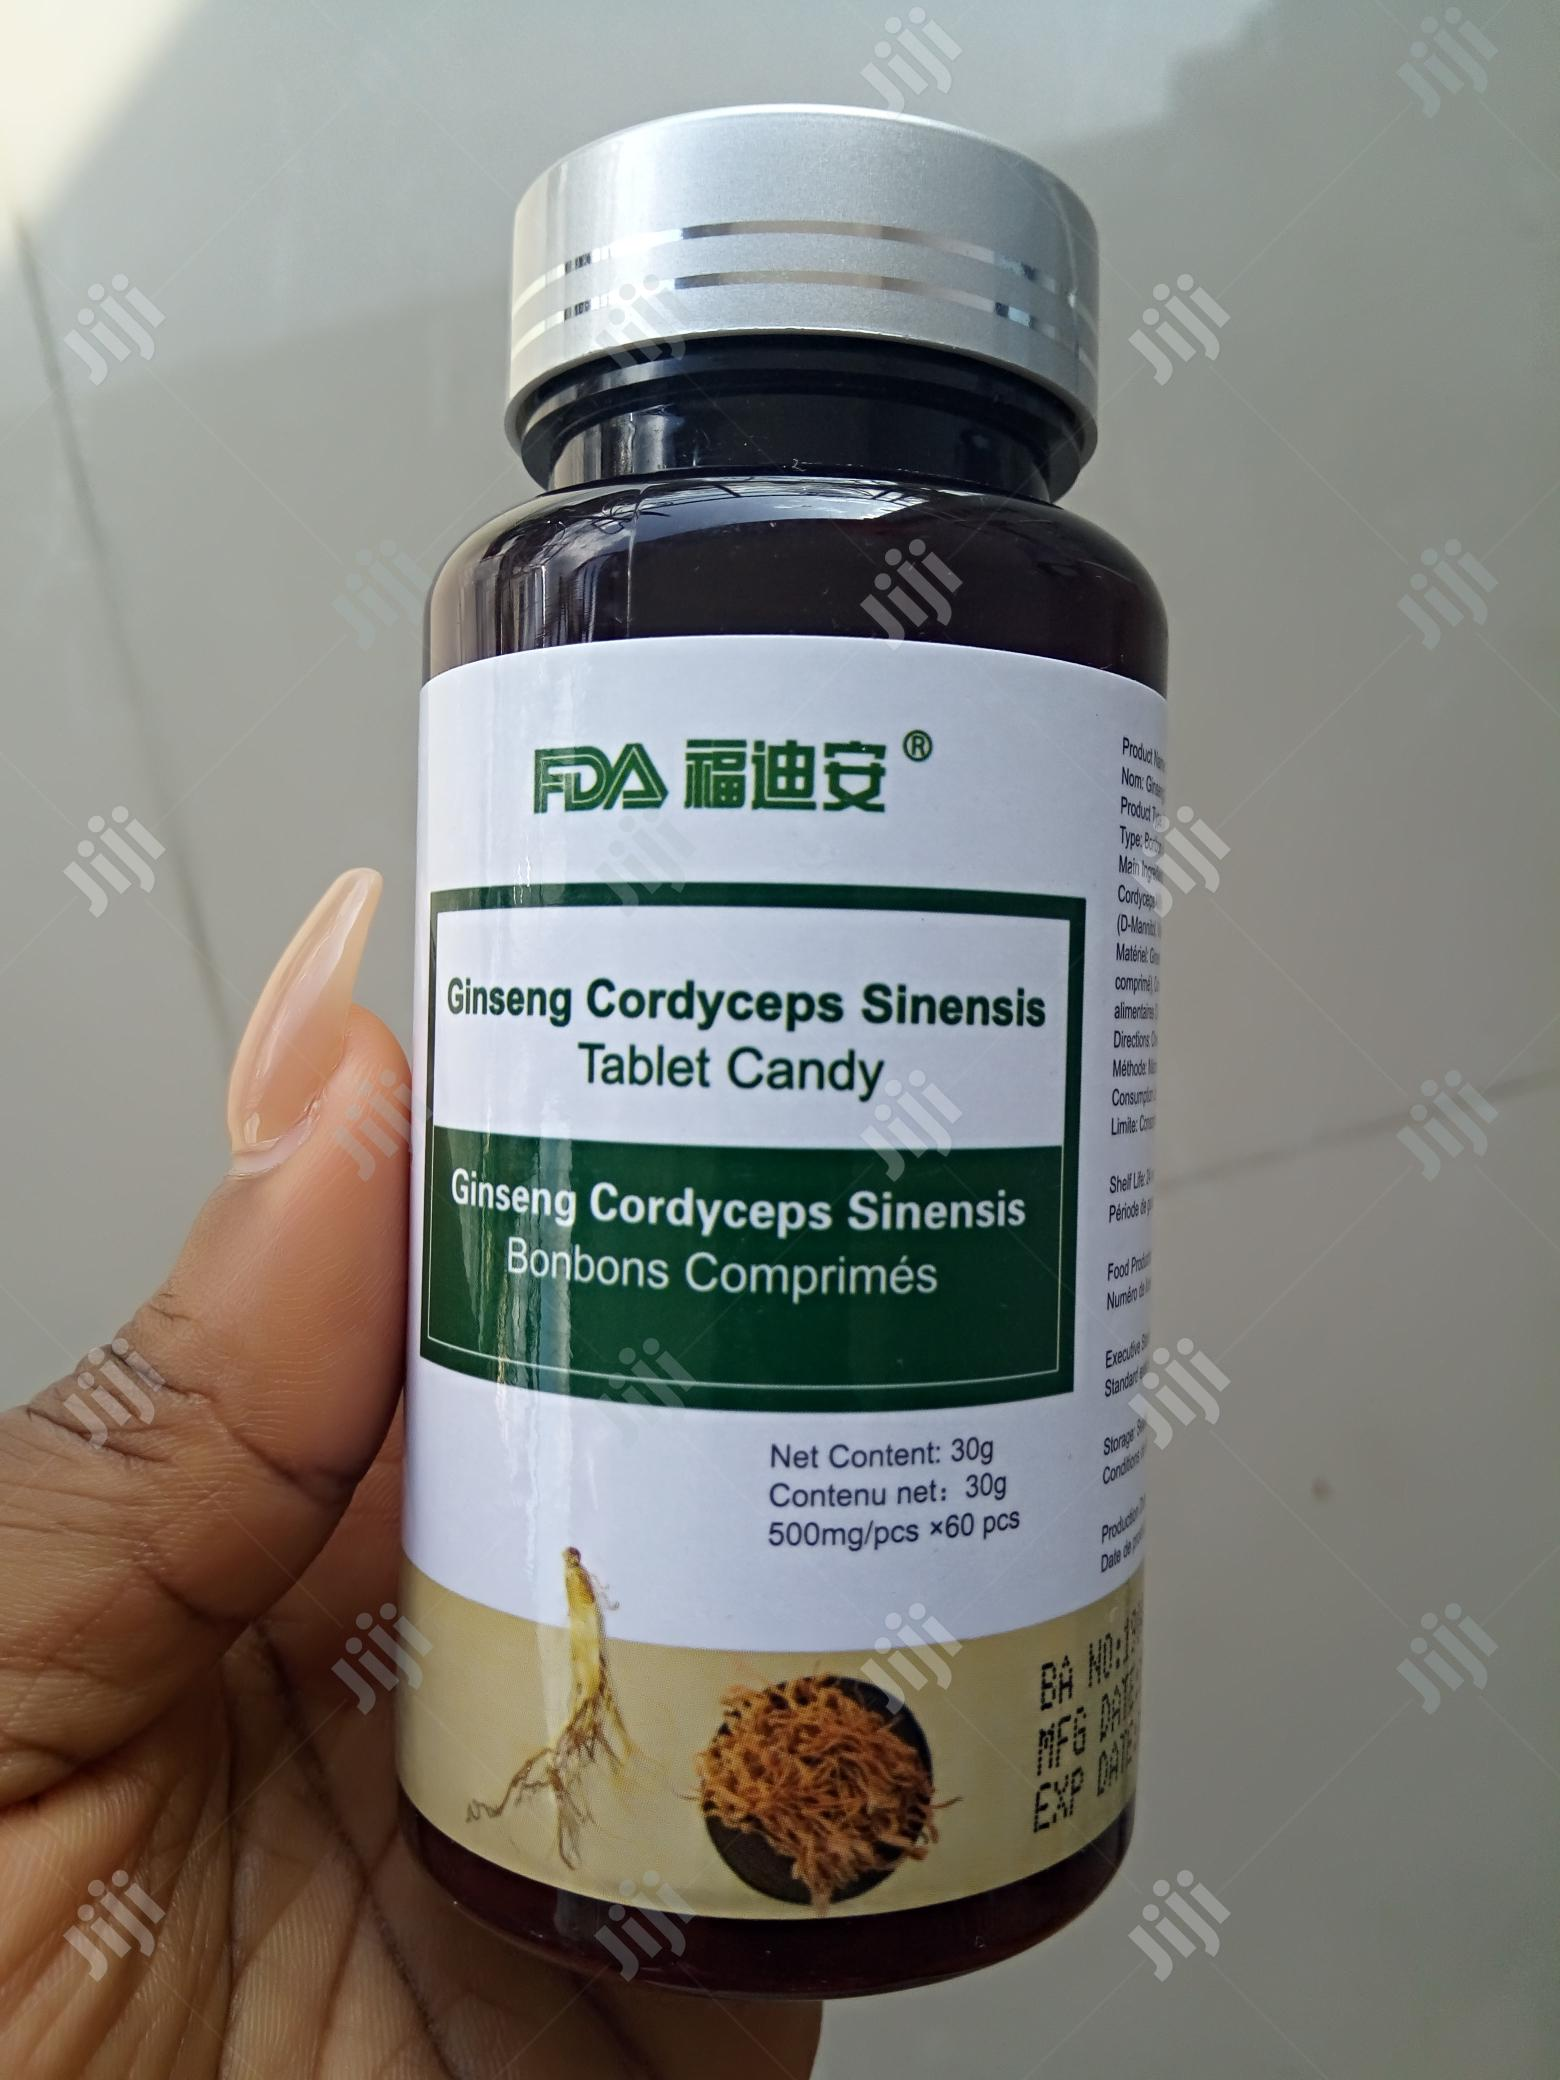 Norland Ginseng Cordyceps 100%Permanent Cure for Impotence, Fertility